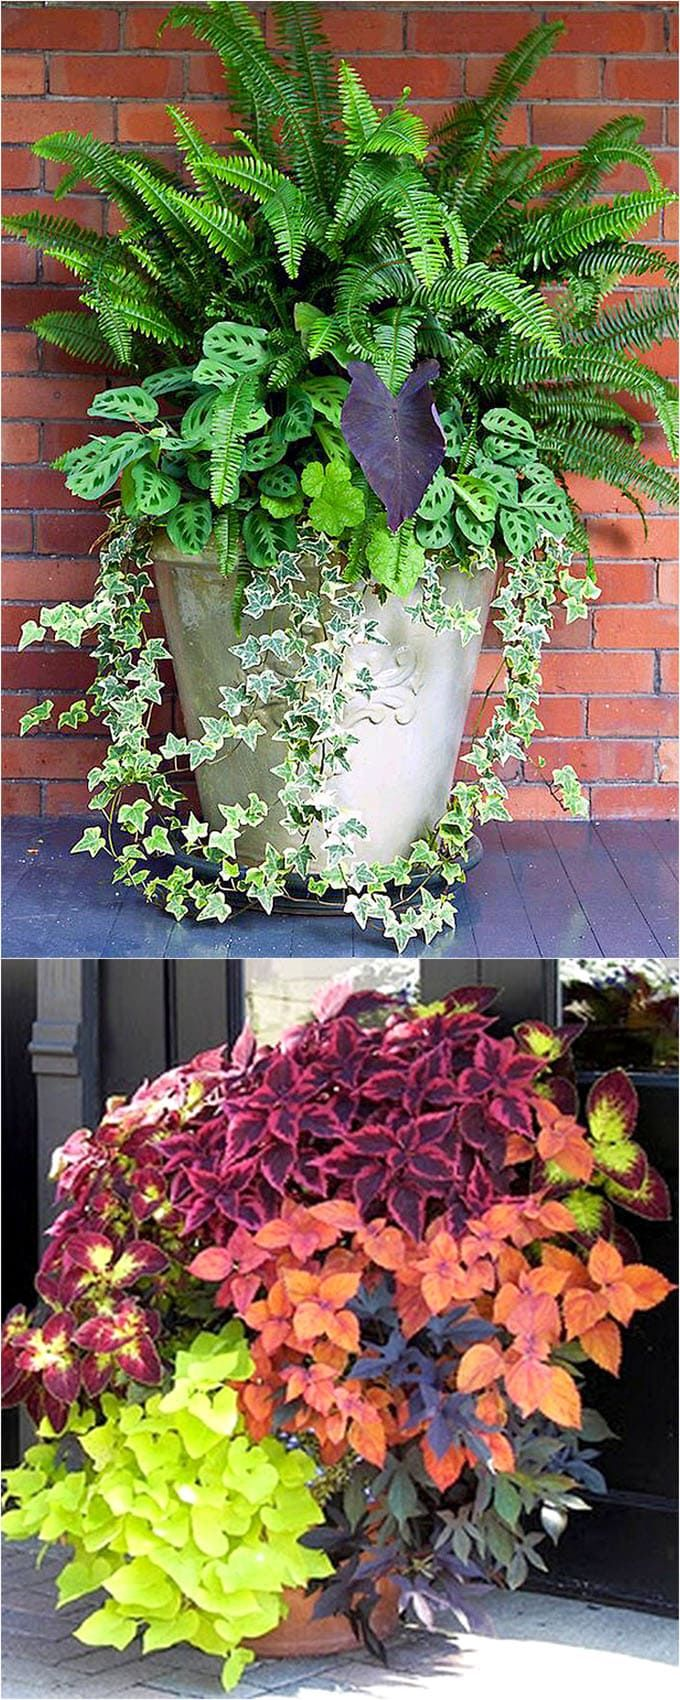 Best Shade Plants 30 Gorgeous Container Garden Planting Lists Showy Colorful And Easy Care Gardens With Vibrant Foliage